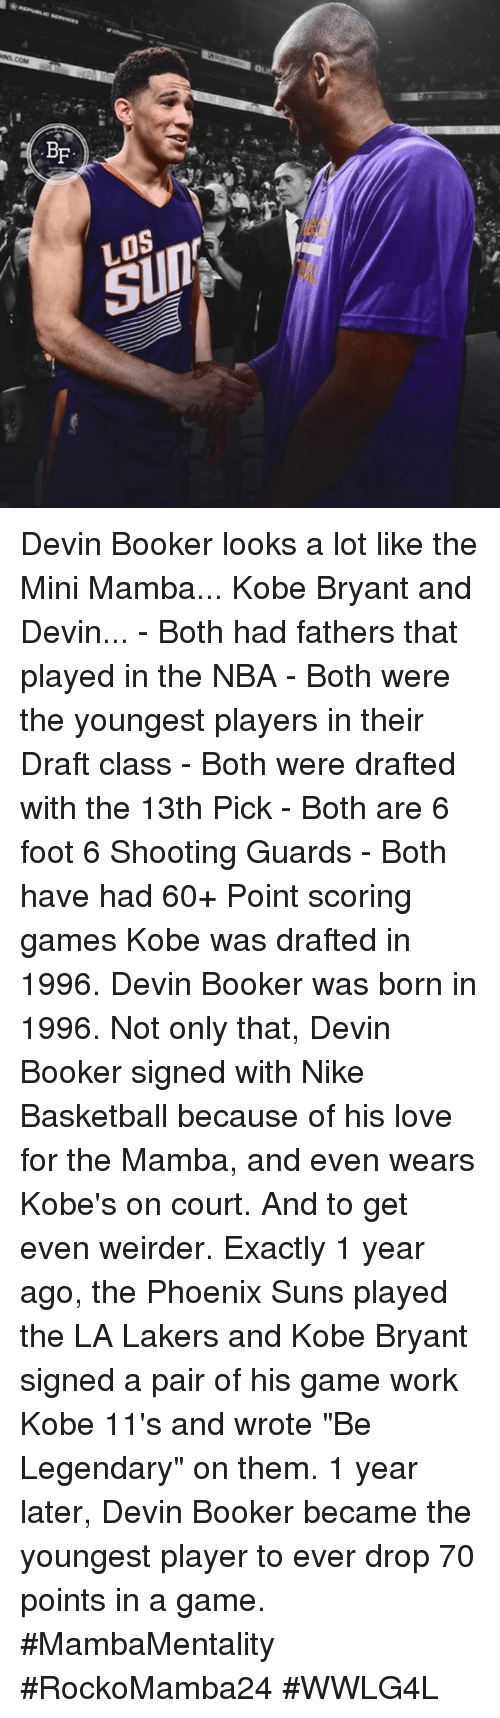 "Memes, 🤖, and Player: BF  SUIT Devin Booker looks a lot like the Mini Mamba...   Kobe Bryant and Devin...   - Both had fathers that played in the NBA - Both were the youngest players in their Draft class - Both were drafted with the 13th Pick  - Both are 6 foot 6 Shooting Guards  - Both have had 60+ Point scoring games  Kobe was drafted in 1996. Devin Booker was born in 1996.  Not only that, Devin Booker signed with Nike Basketball because of his love for the Mamba, and even wears Kobe's on court.   And to get even weirder. Exactly 1 year ago, the Phoenix Suns played the LA Lakers and Kobe Bryant signed a pair of his game work Kobe 11's and wrote ""Be Legendary"" on them.   1 year later, Devin Booker became the youngest player to ever drop 70 points in a game. #MambaMentality   #RockoMamba24 #WWLG4L"